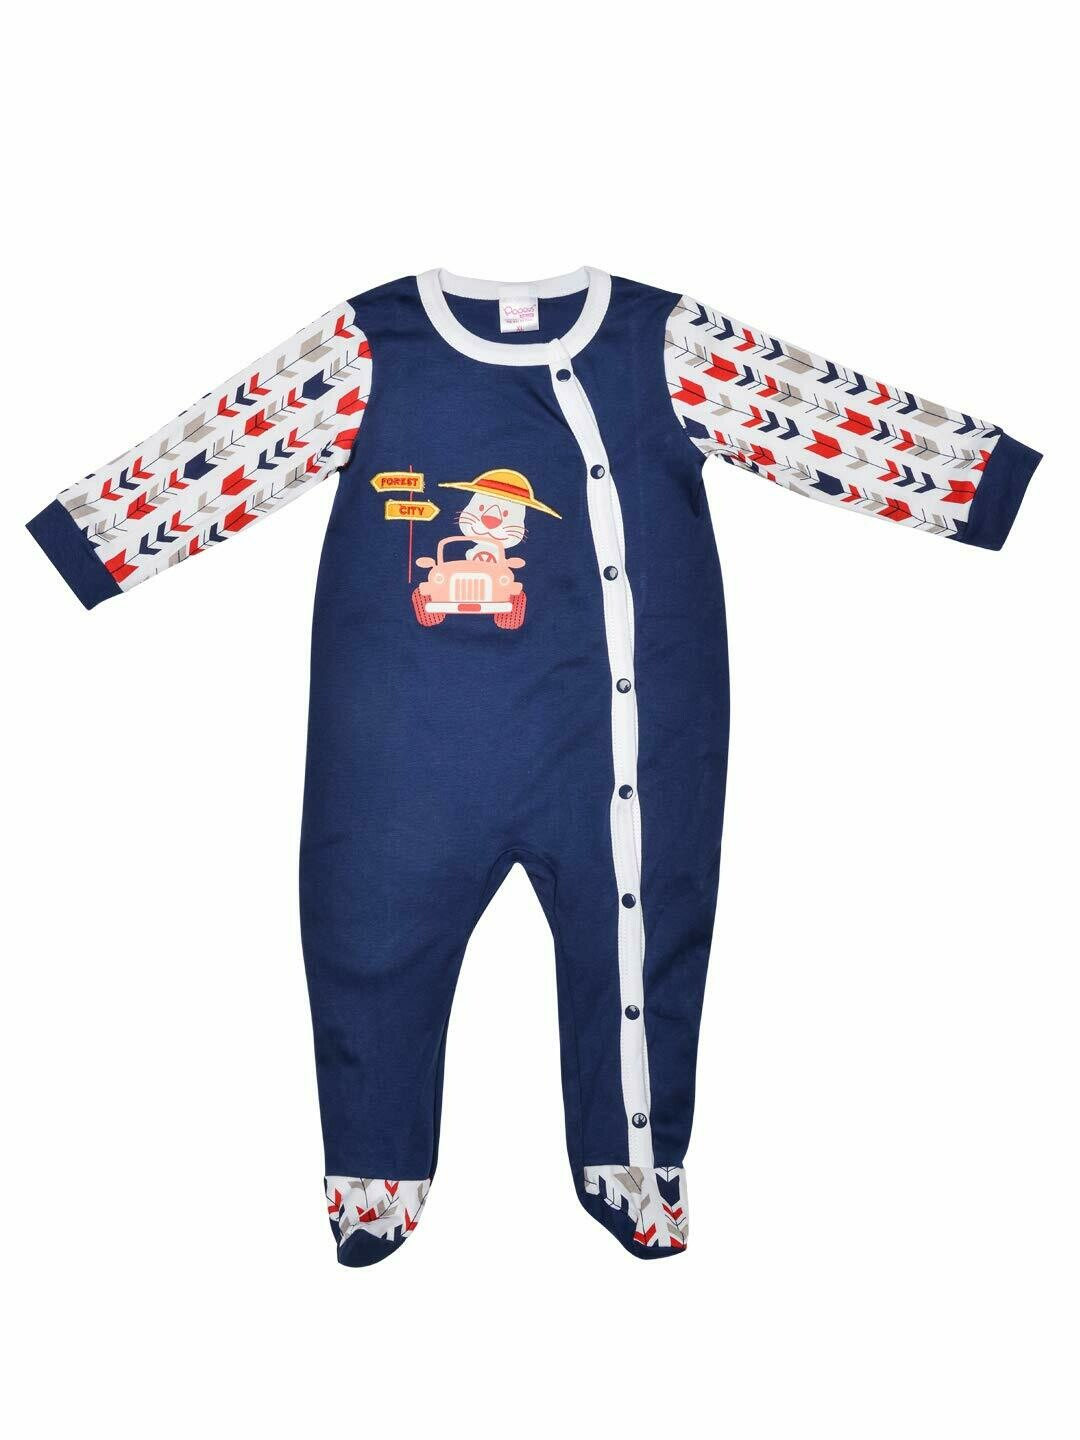 Horus Navy Blue Fullsleeves Printed Sleepsuit with Embroidery for Boys & Girls M (6-12 Months)